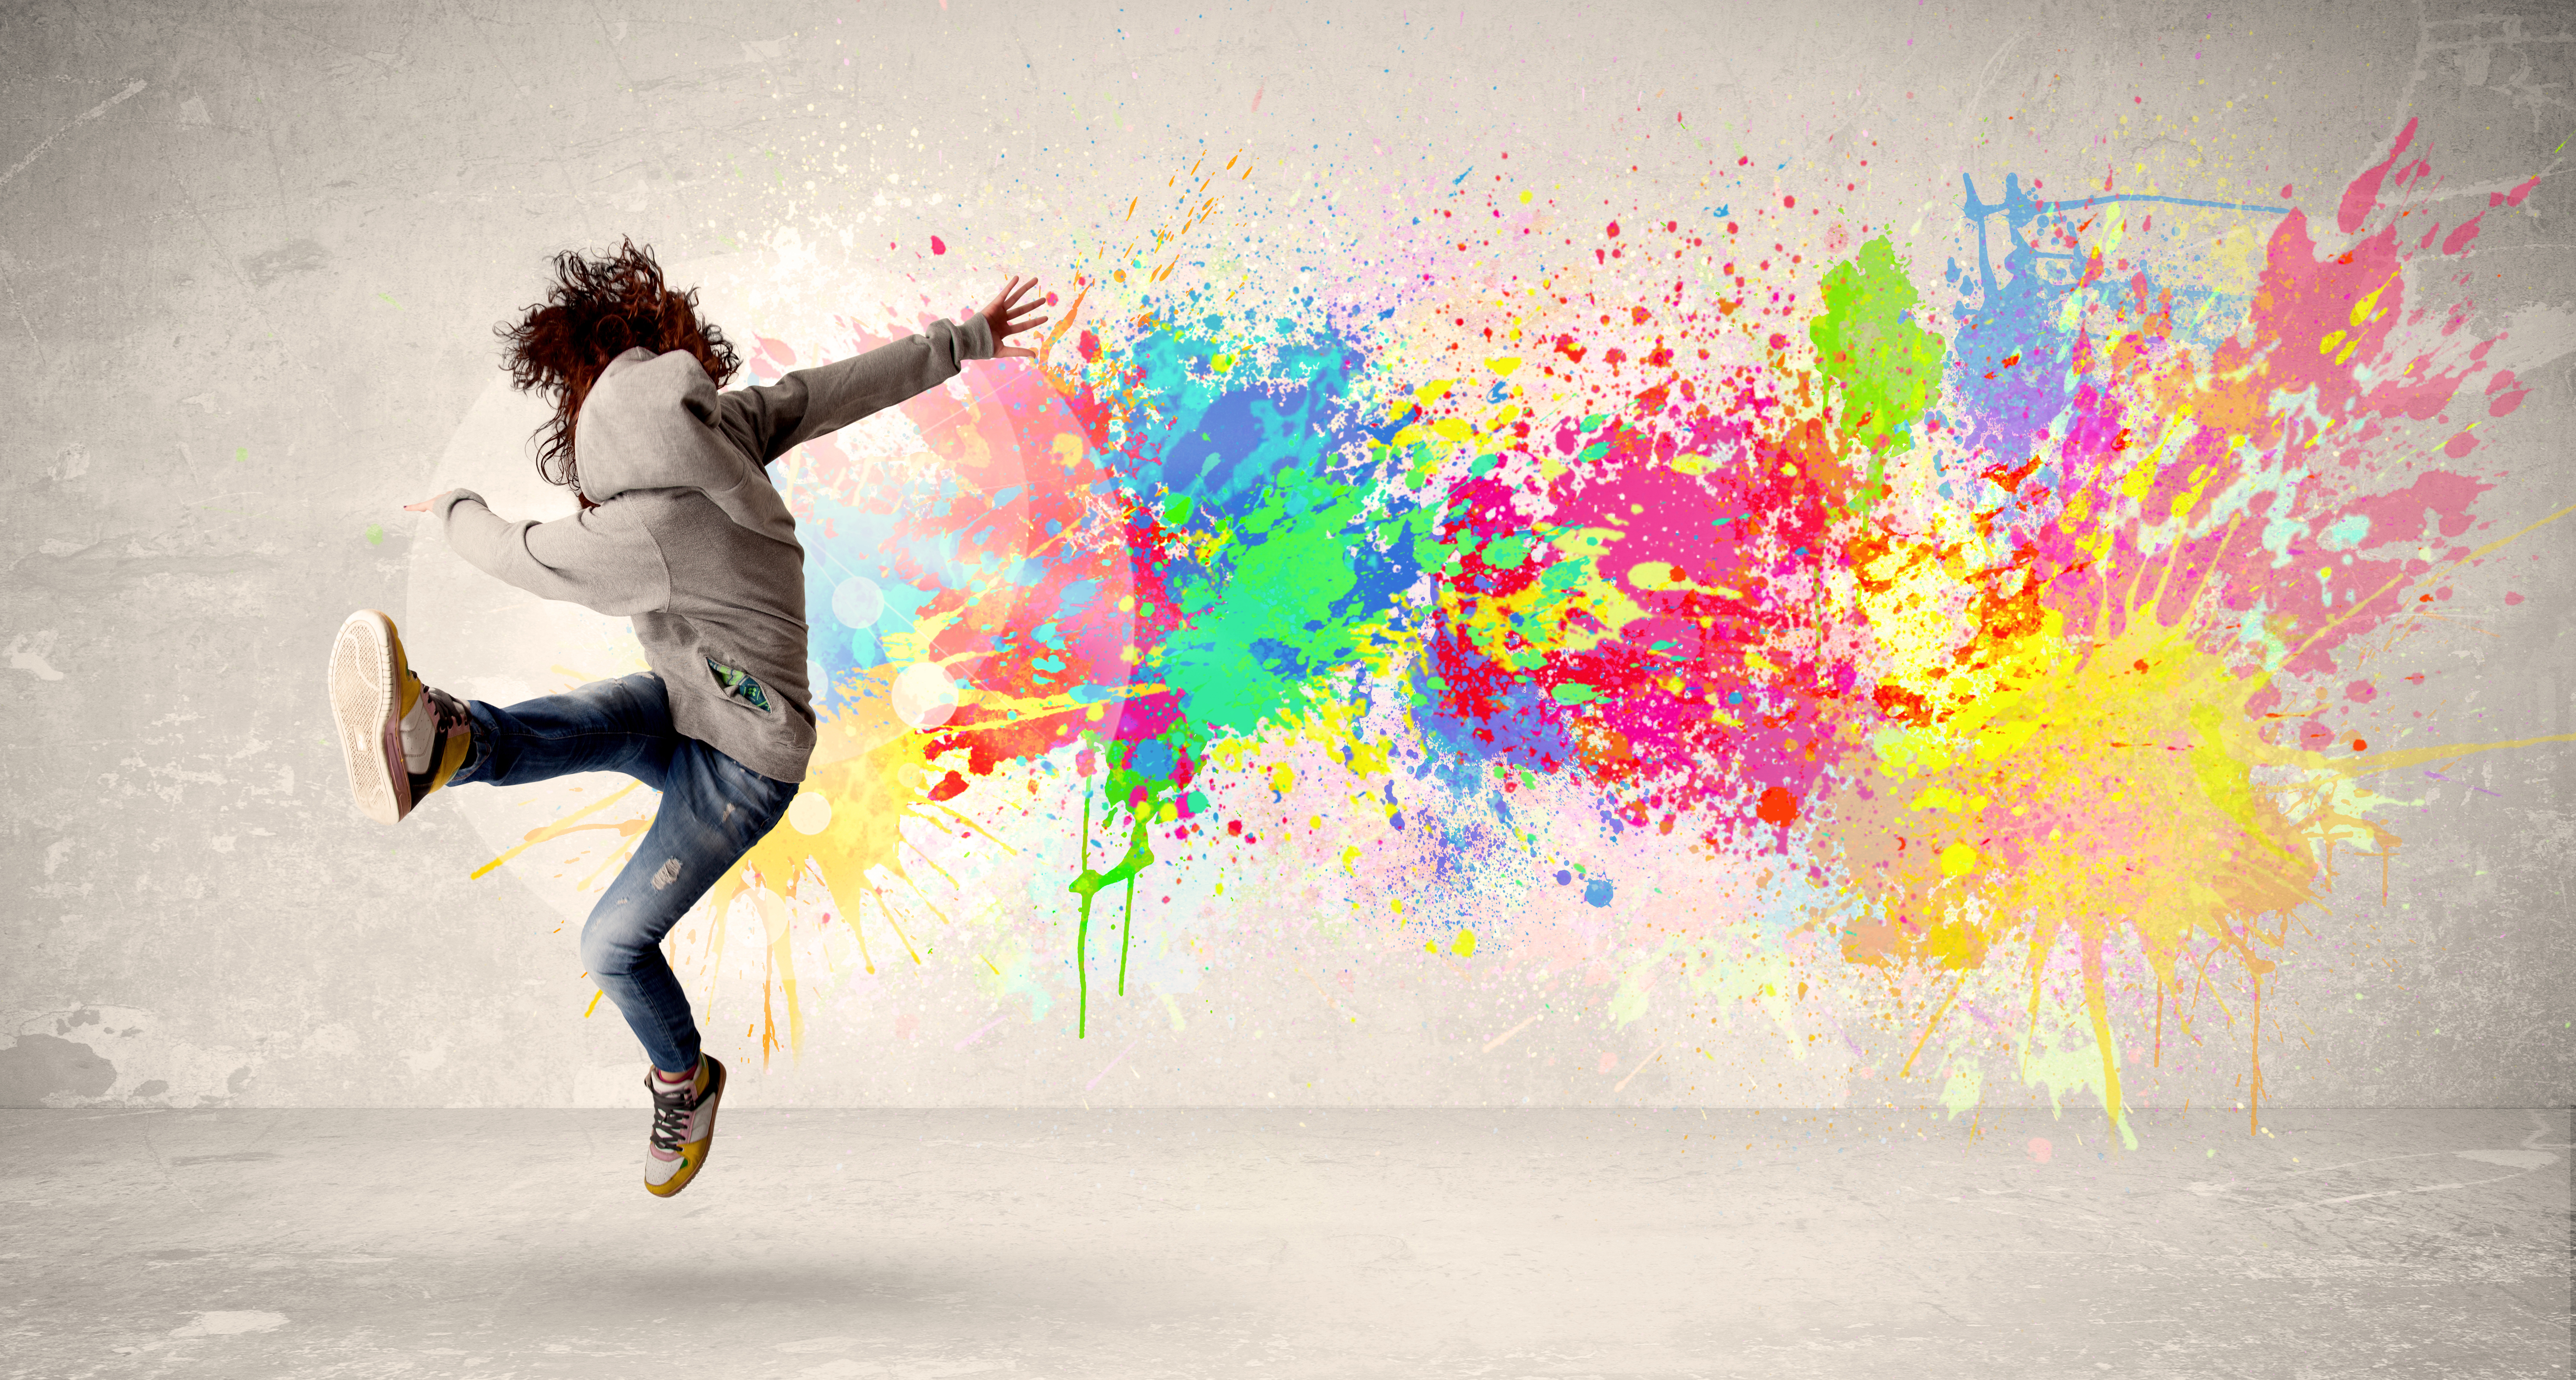 A person kicking one foot in the air with a colorful paint splatter on the wall behind them